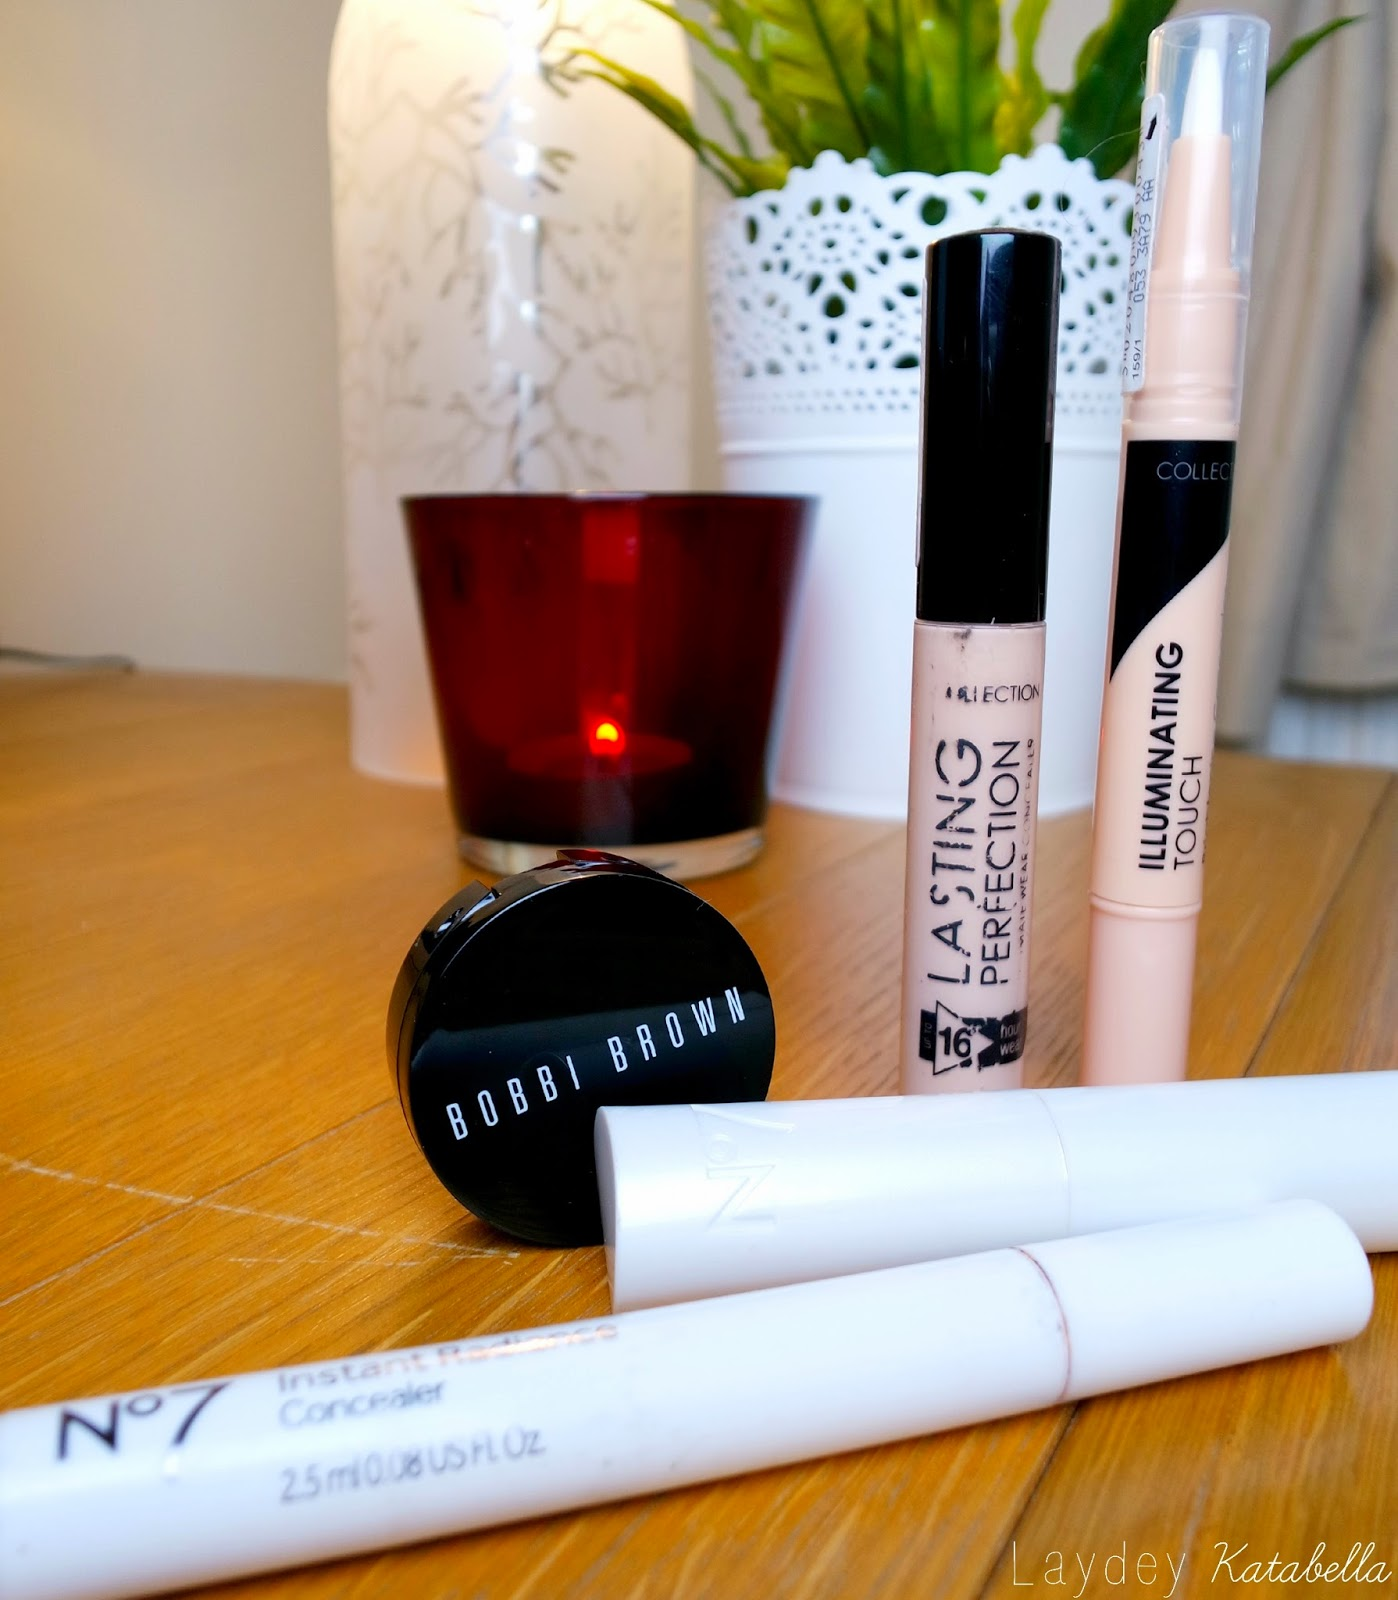 Photo of No7 Match Made Concealer, Bobbi Brown Corrector, No7 Instant Radiance Concealer, Collection 2000 Lasting Perfection Concealer and Collection Illuminating Touch Concealer